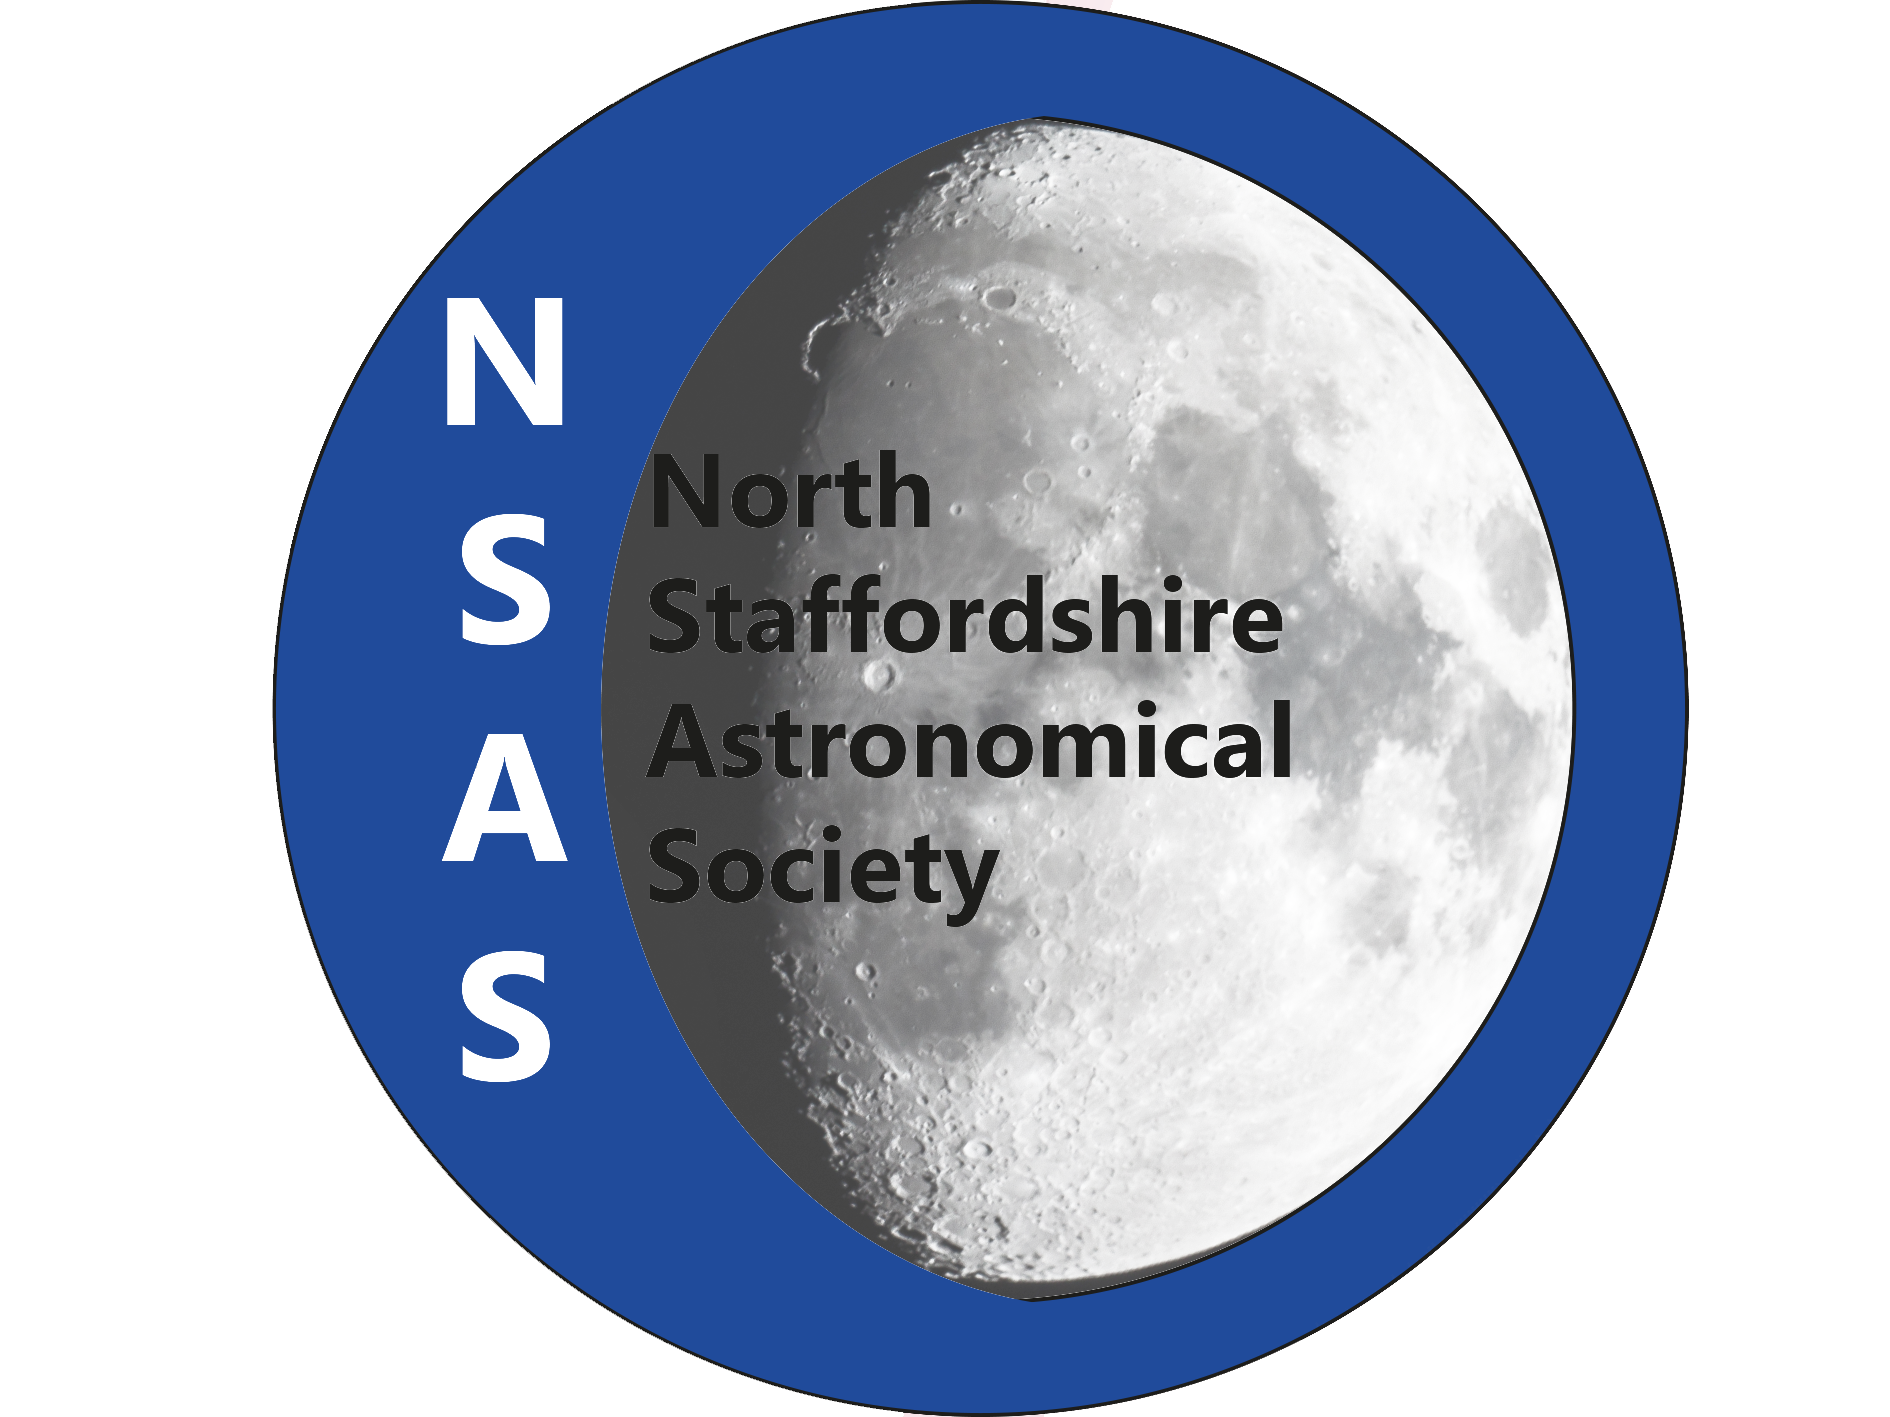 North Staffordshire Astronomical Society